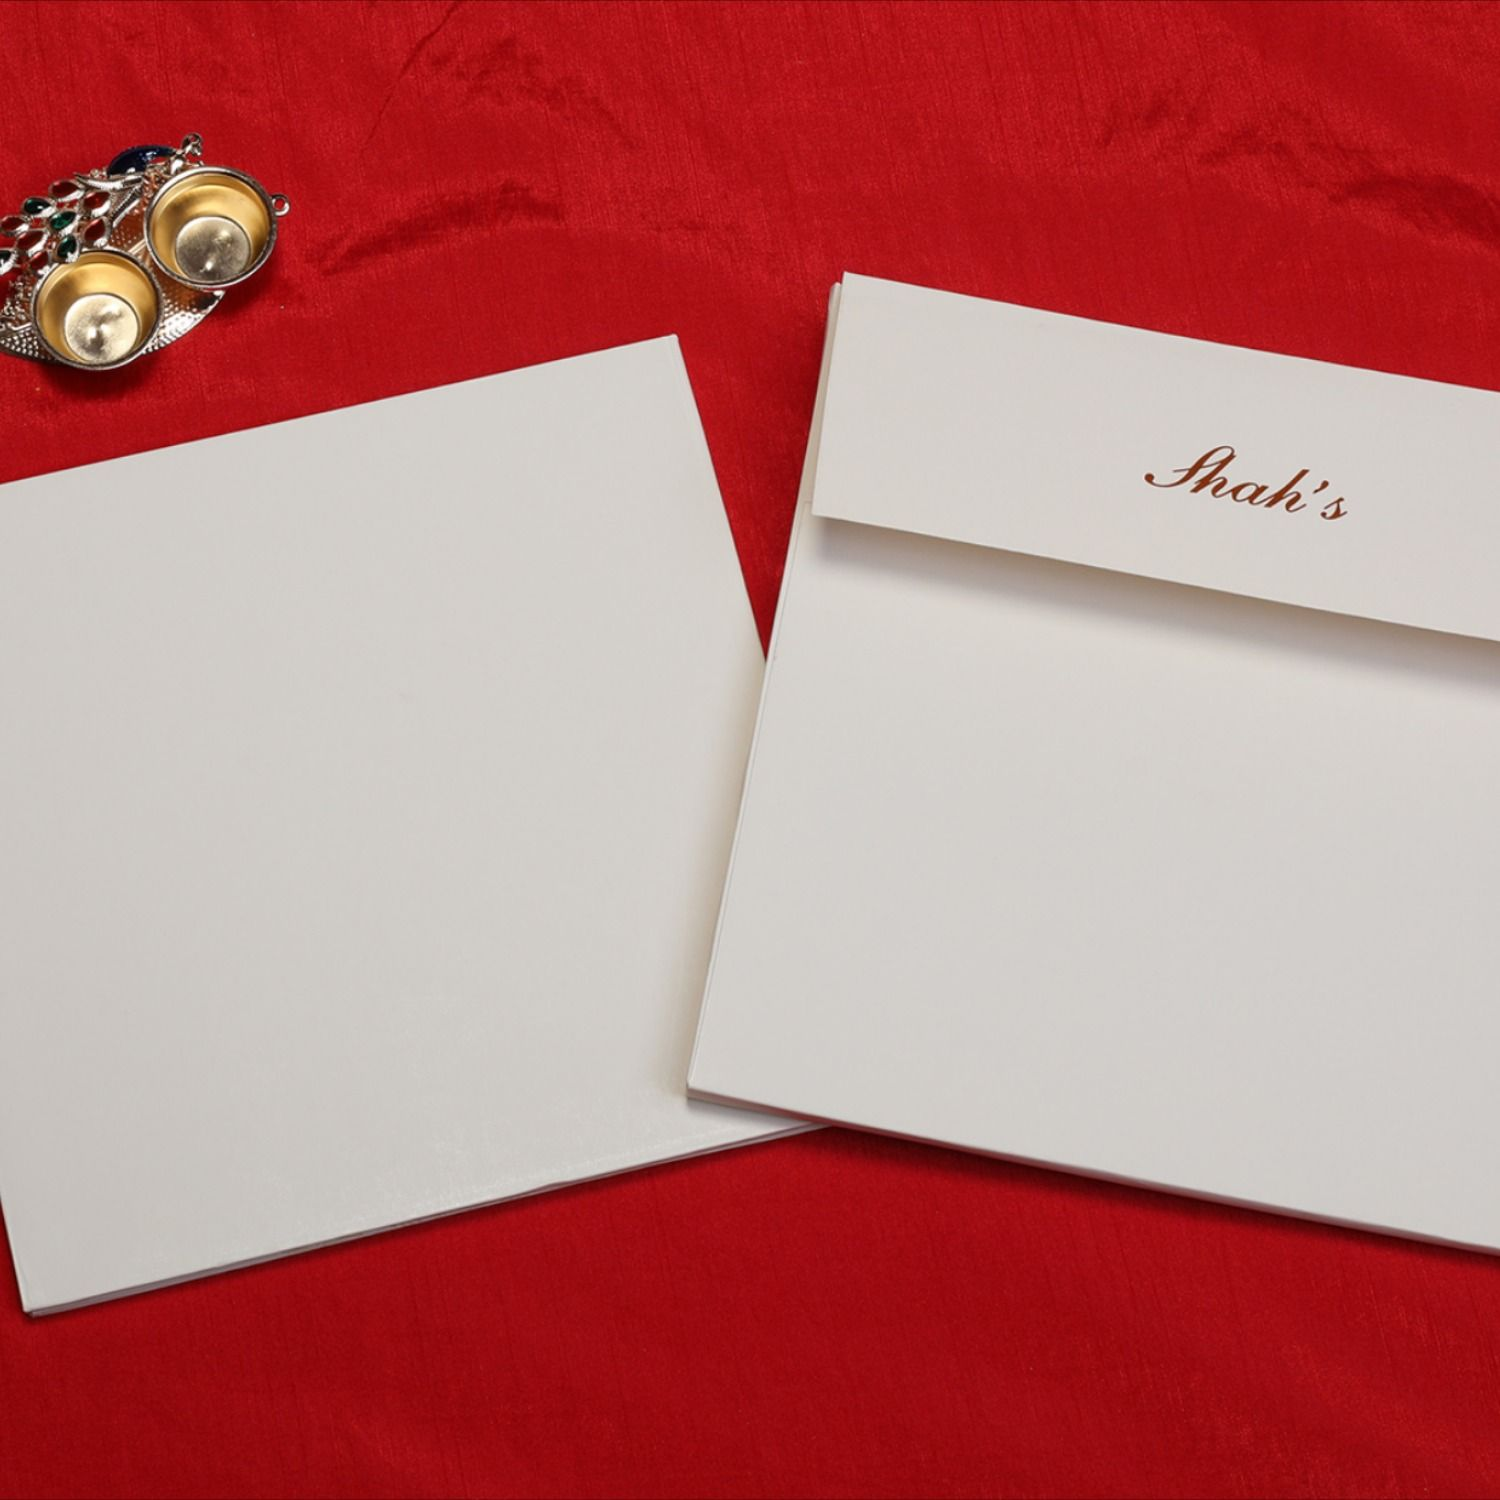 Marriage Card in 2020 | Marriage cards, Wedding cards, Free wedding cards